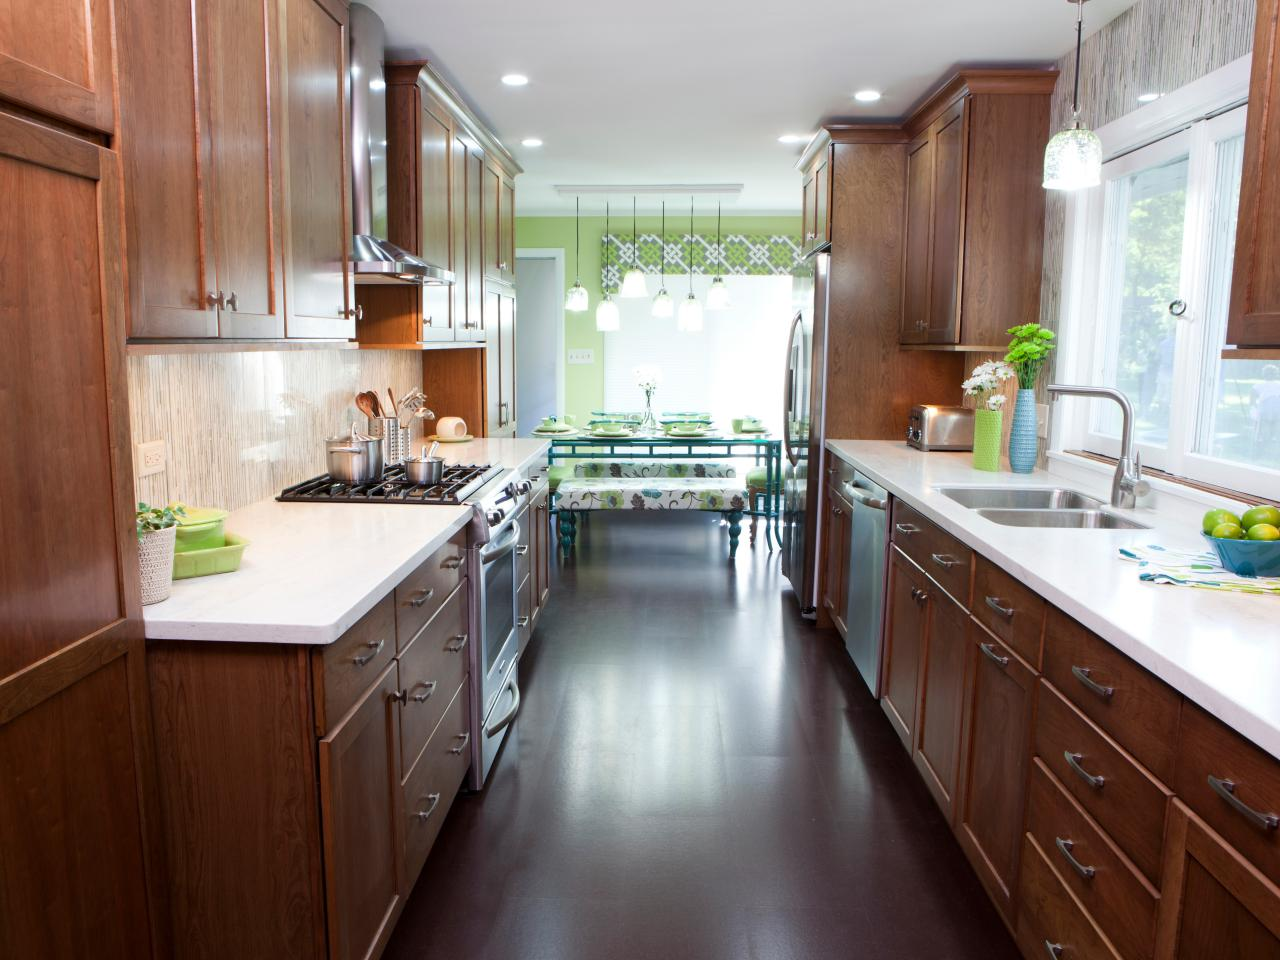 galley kitchen considerations for a kitchen layout - my ideal home